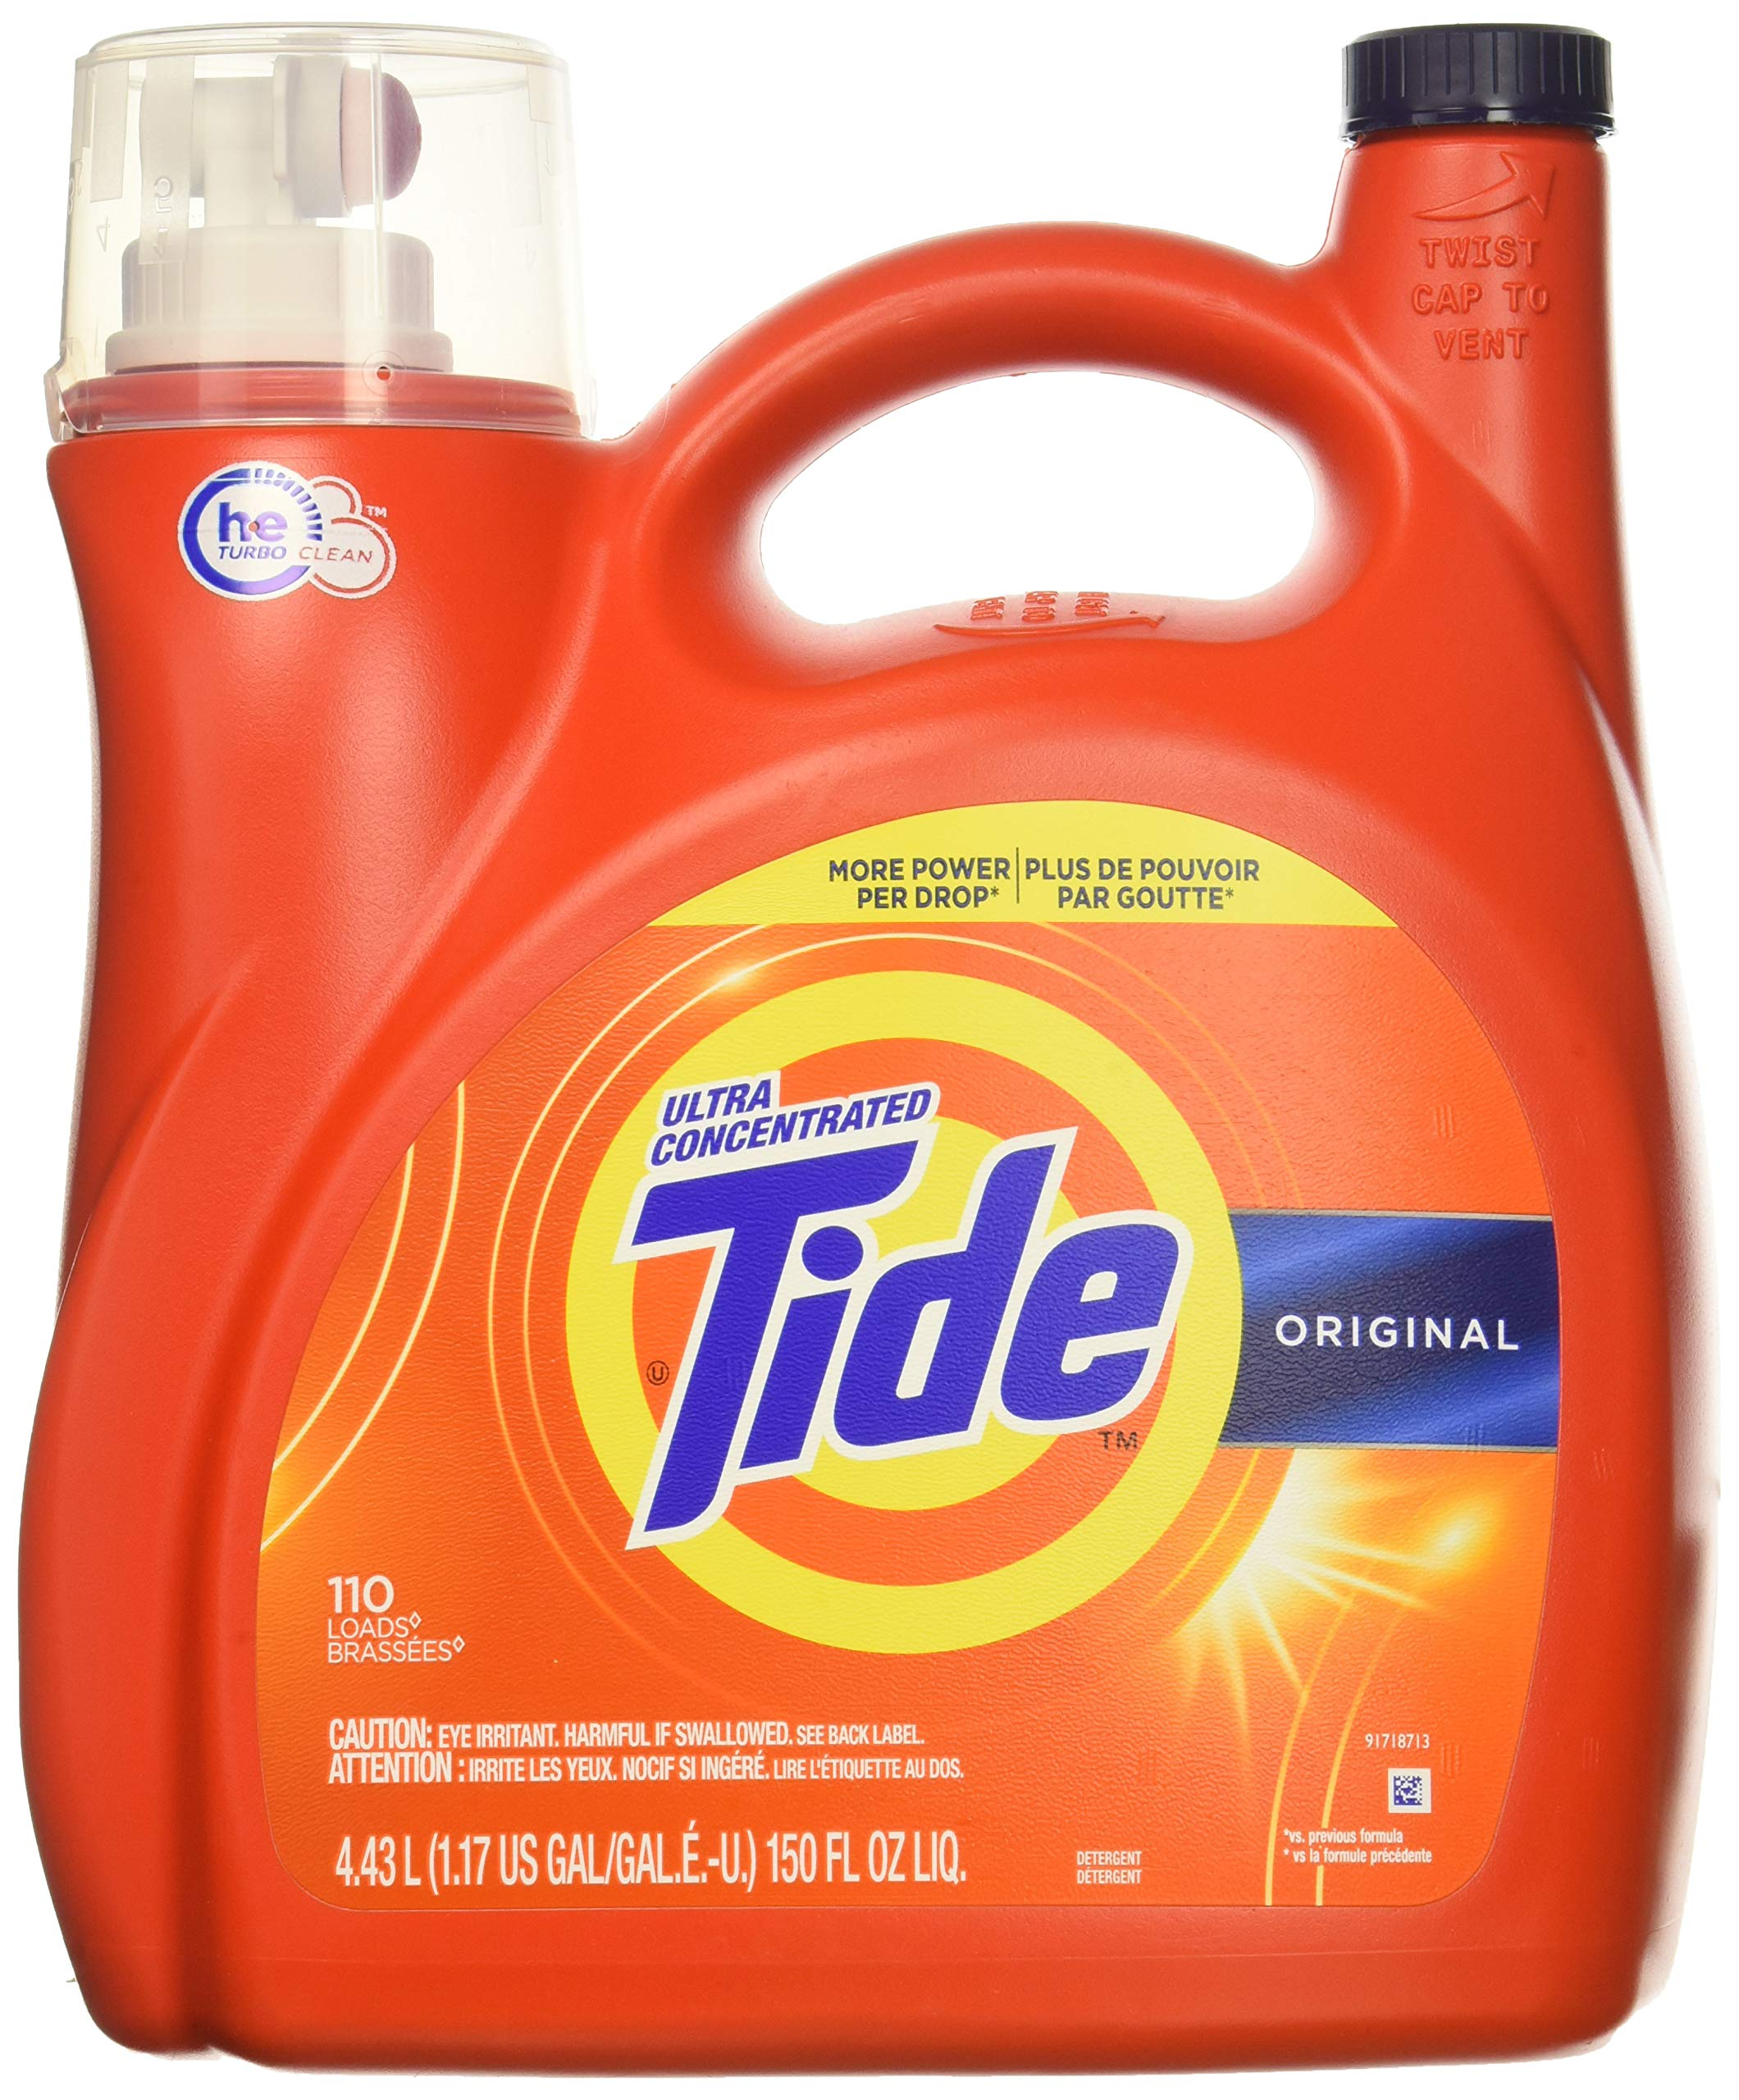 Tide Original 037000777335 High Efficiency Laundry Detergent 150 Oz / 4.43L Mega Value Size -110 Loads (2x Ultra Concentrated) More Power Per Drop by Tide